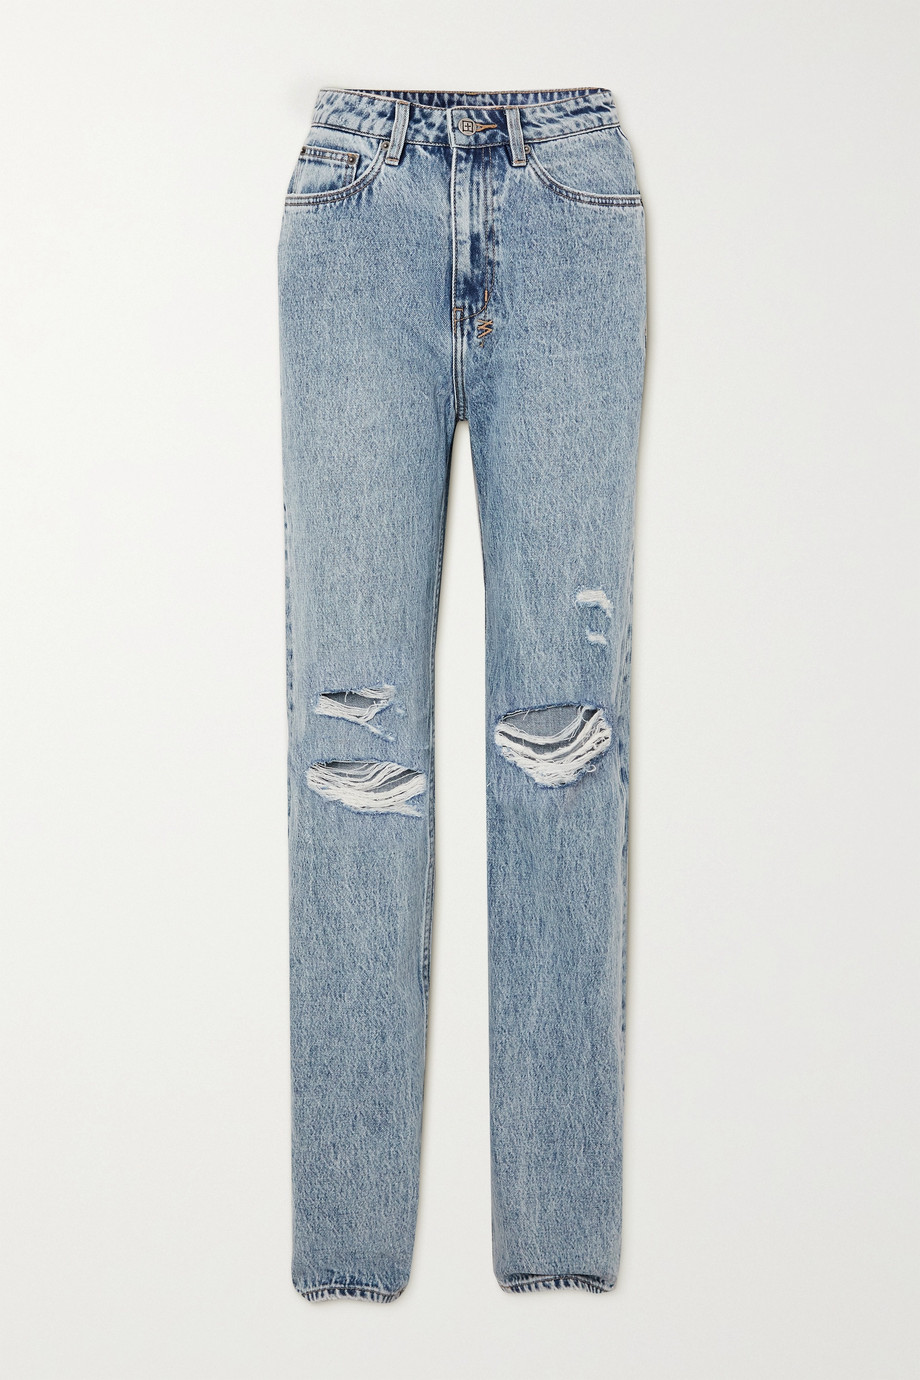 Ksubi Playback Vibez Trashed hoch sitzende Jeans in Distressed-Optik